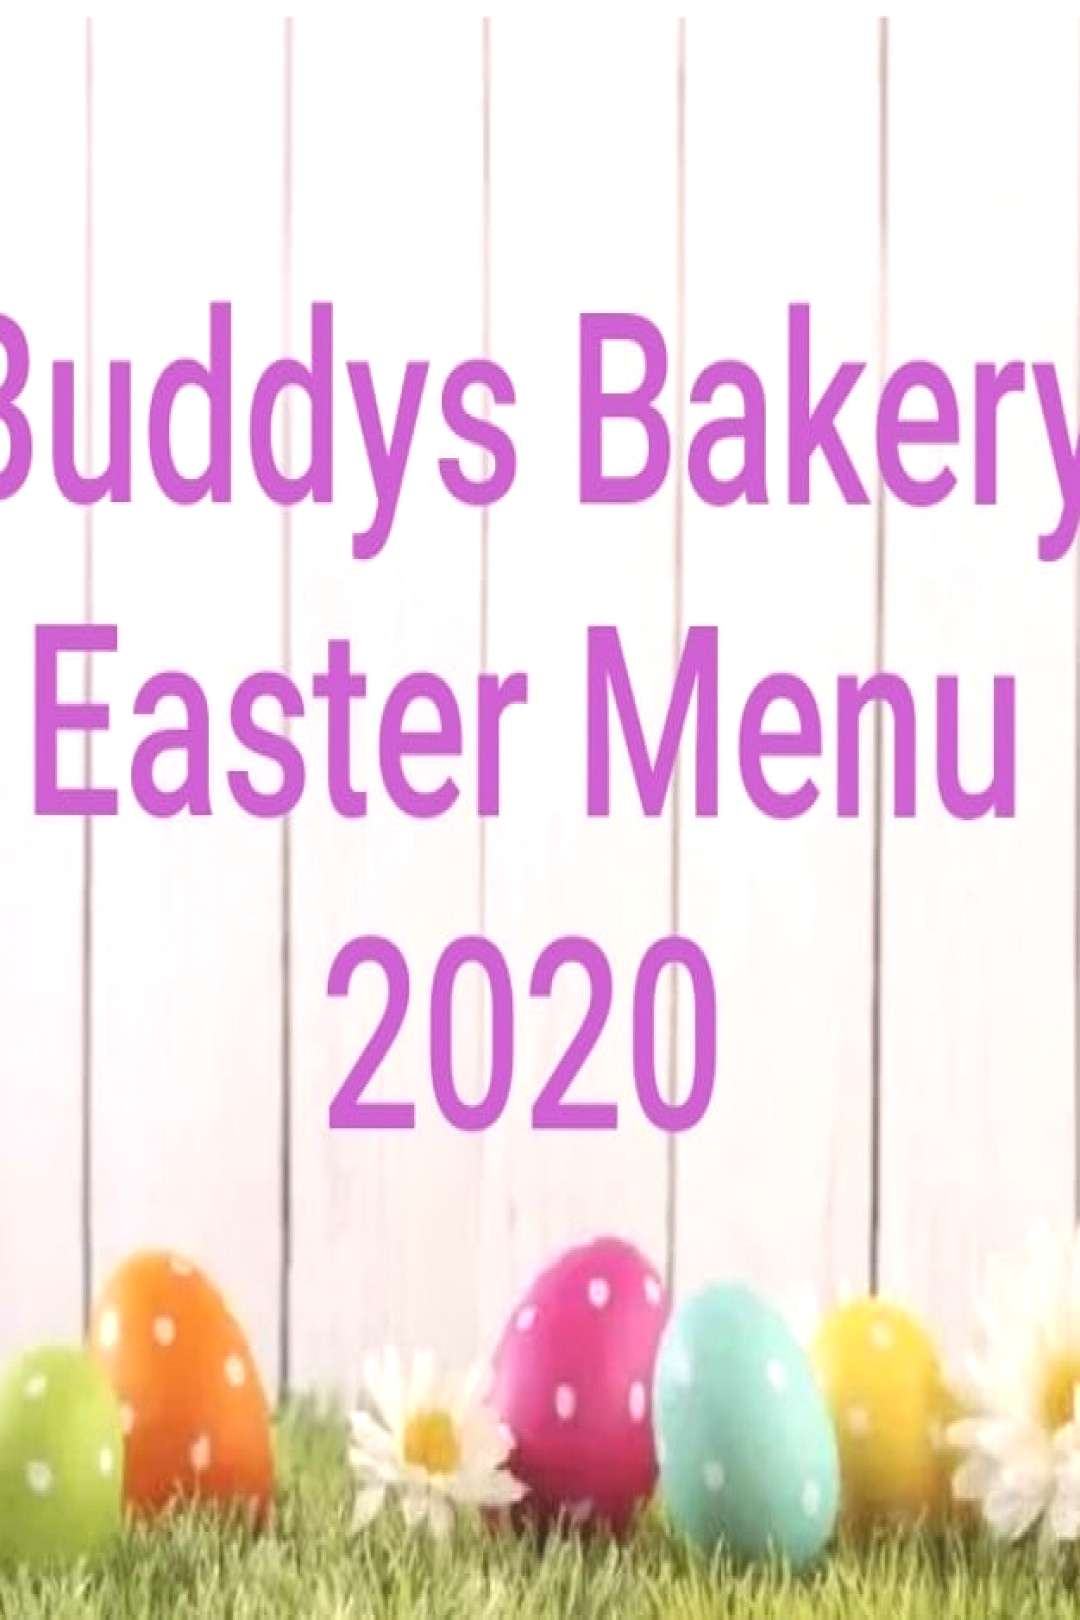 EASTER MENU 2020 All available now in our Etsy shop! #eastertreat